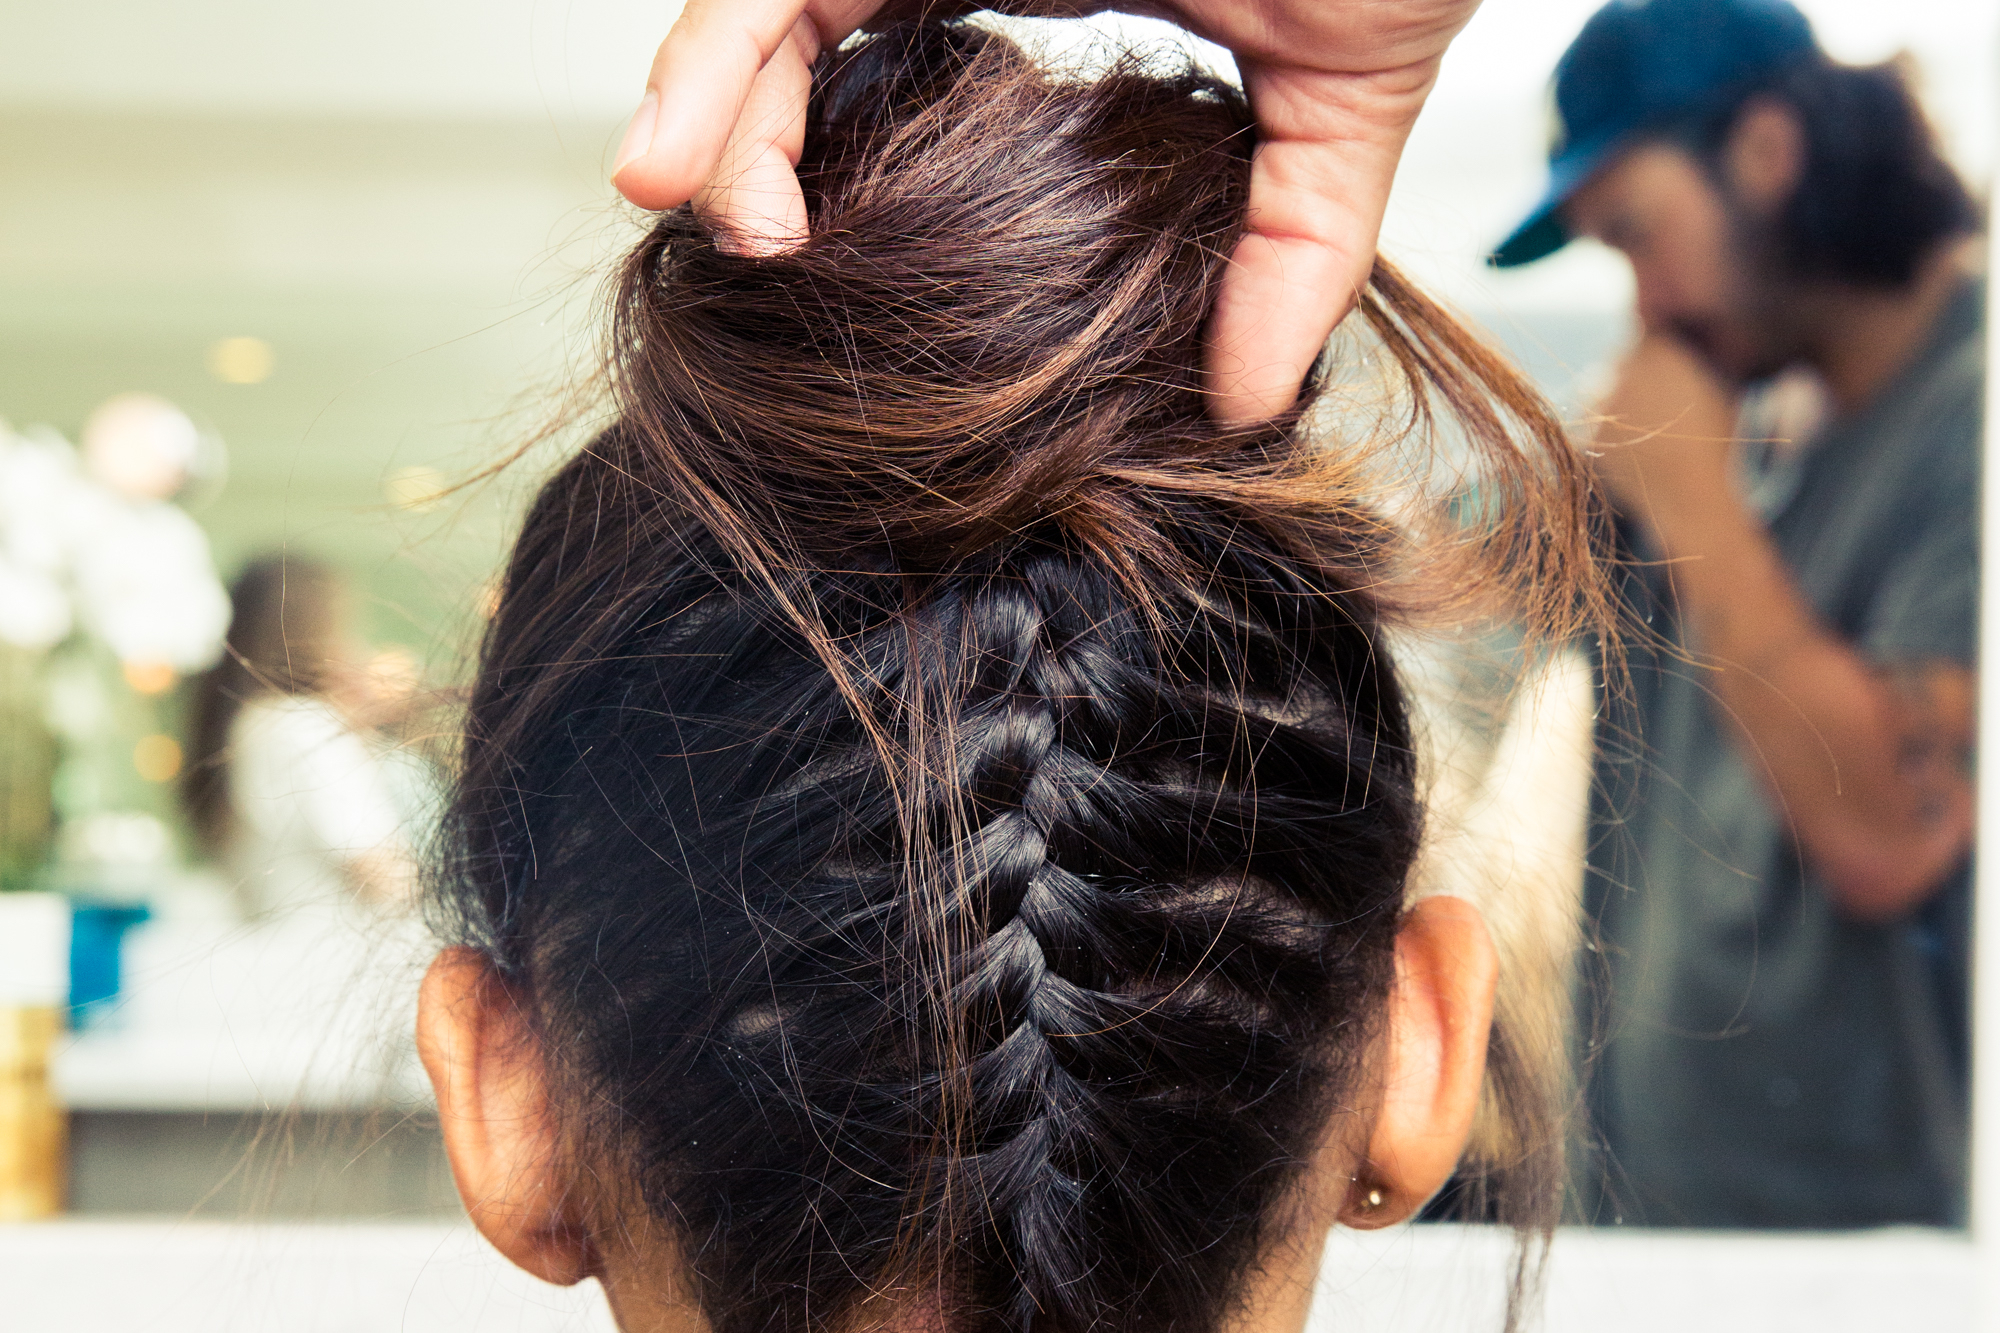 2018 Upside Down Braid And Bun Prom Hairstyles Intended For How To Do An Upside Down Braided Bun – Coveteur (View 20 of 20)